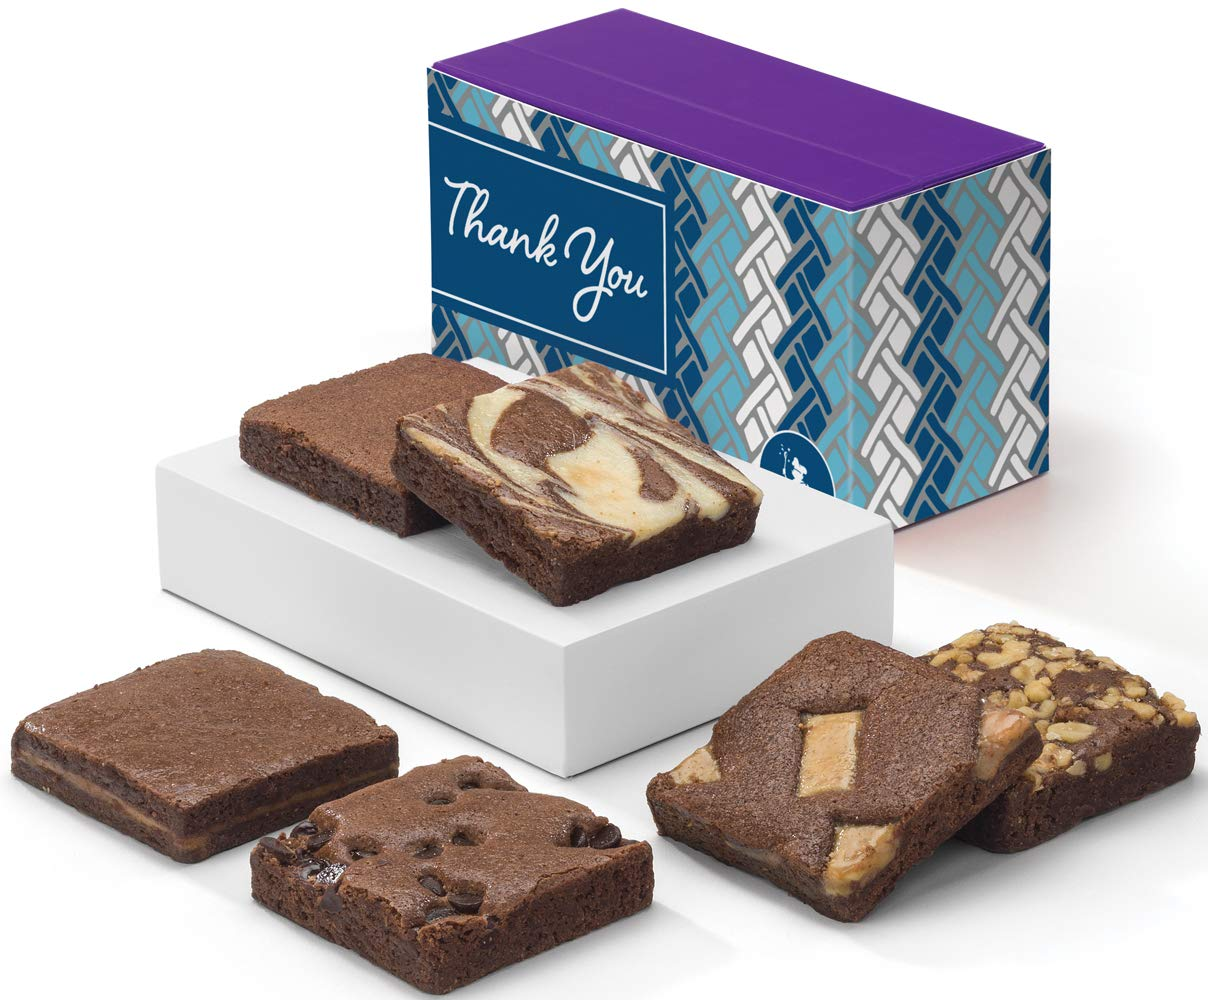 Fairytale Brownies Thank You Half-Dozen Gourmet Chocolate Food Gift Basket - 3 Inch Square Full-Size Brownies - 6 Pieces - Item HY160